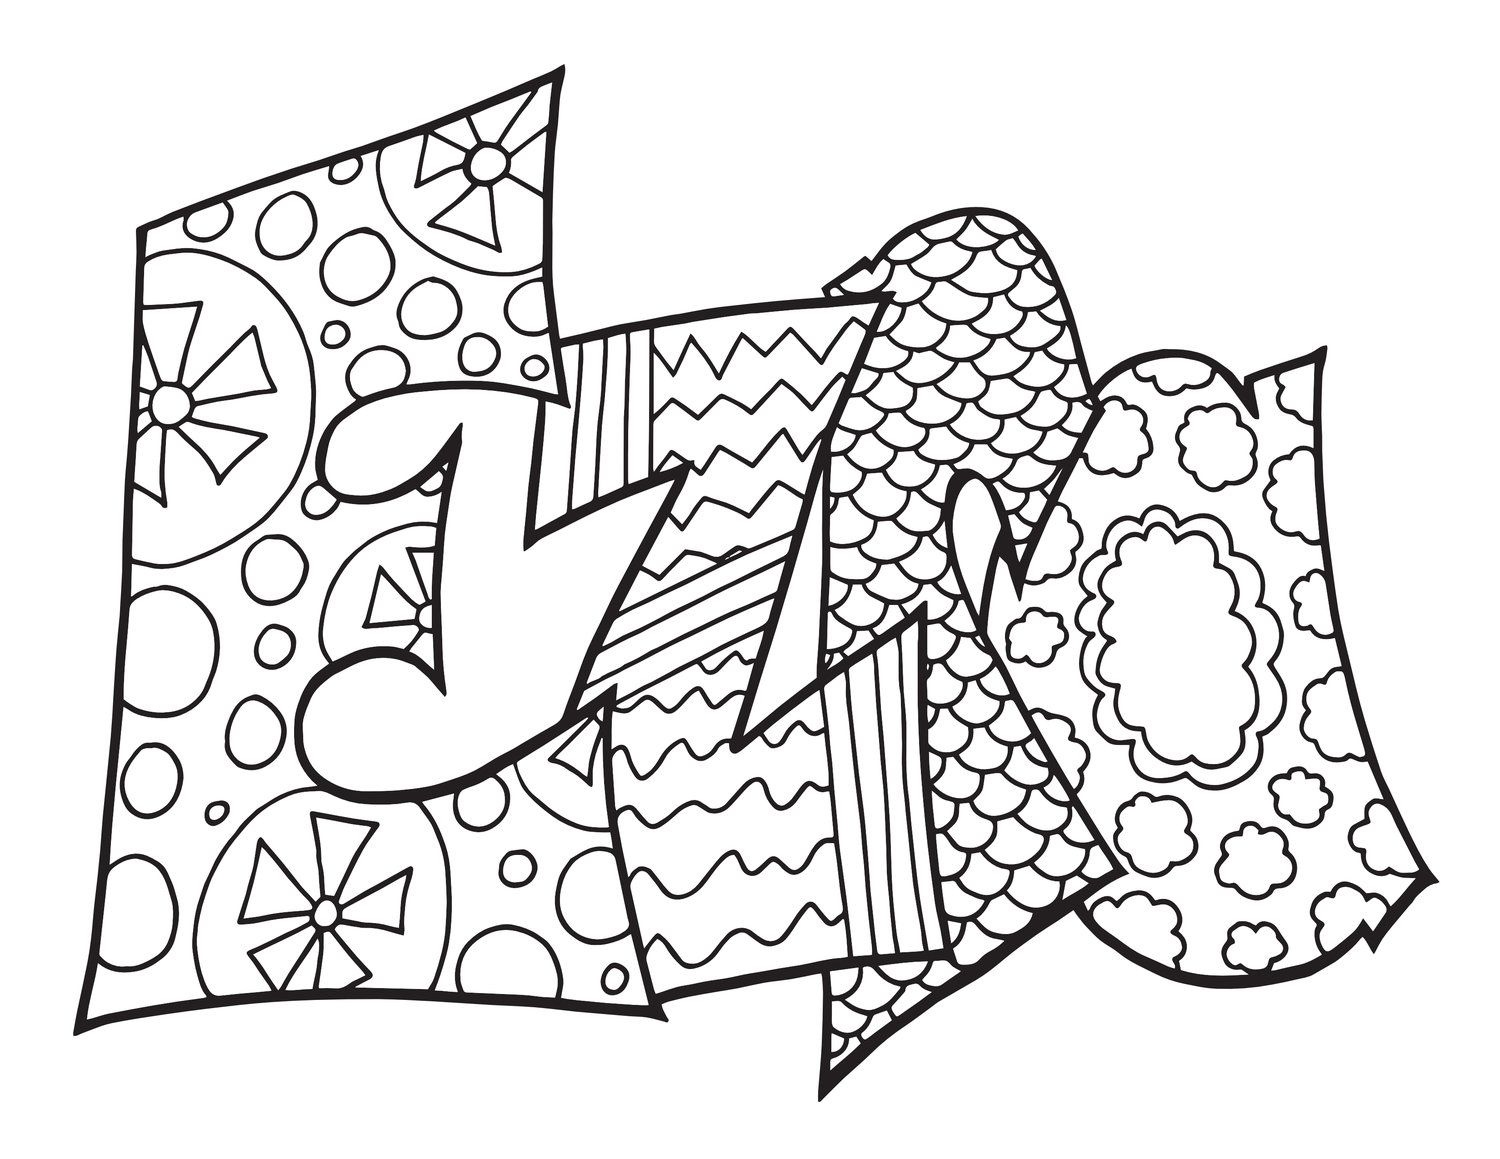 Ezra Free Coloring Page Coloring Pages Free Coloring Pages